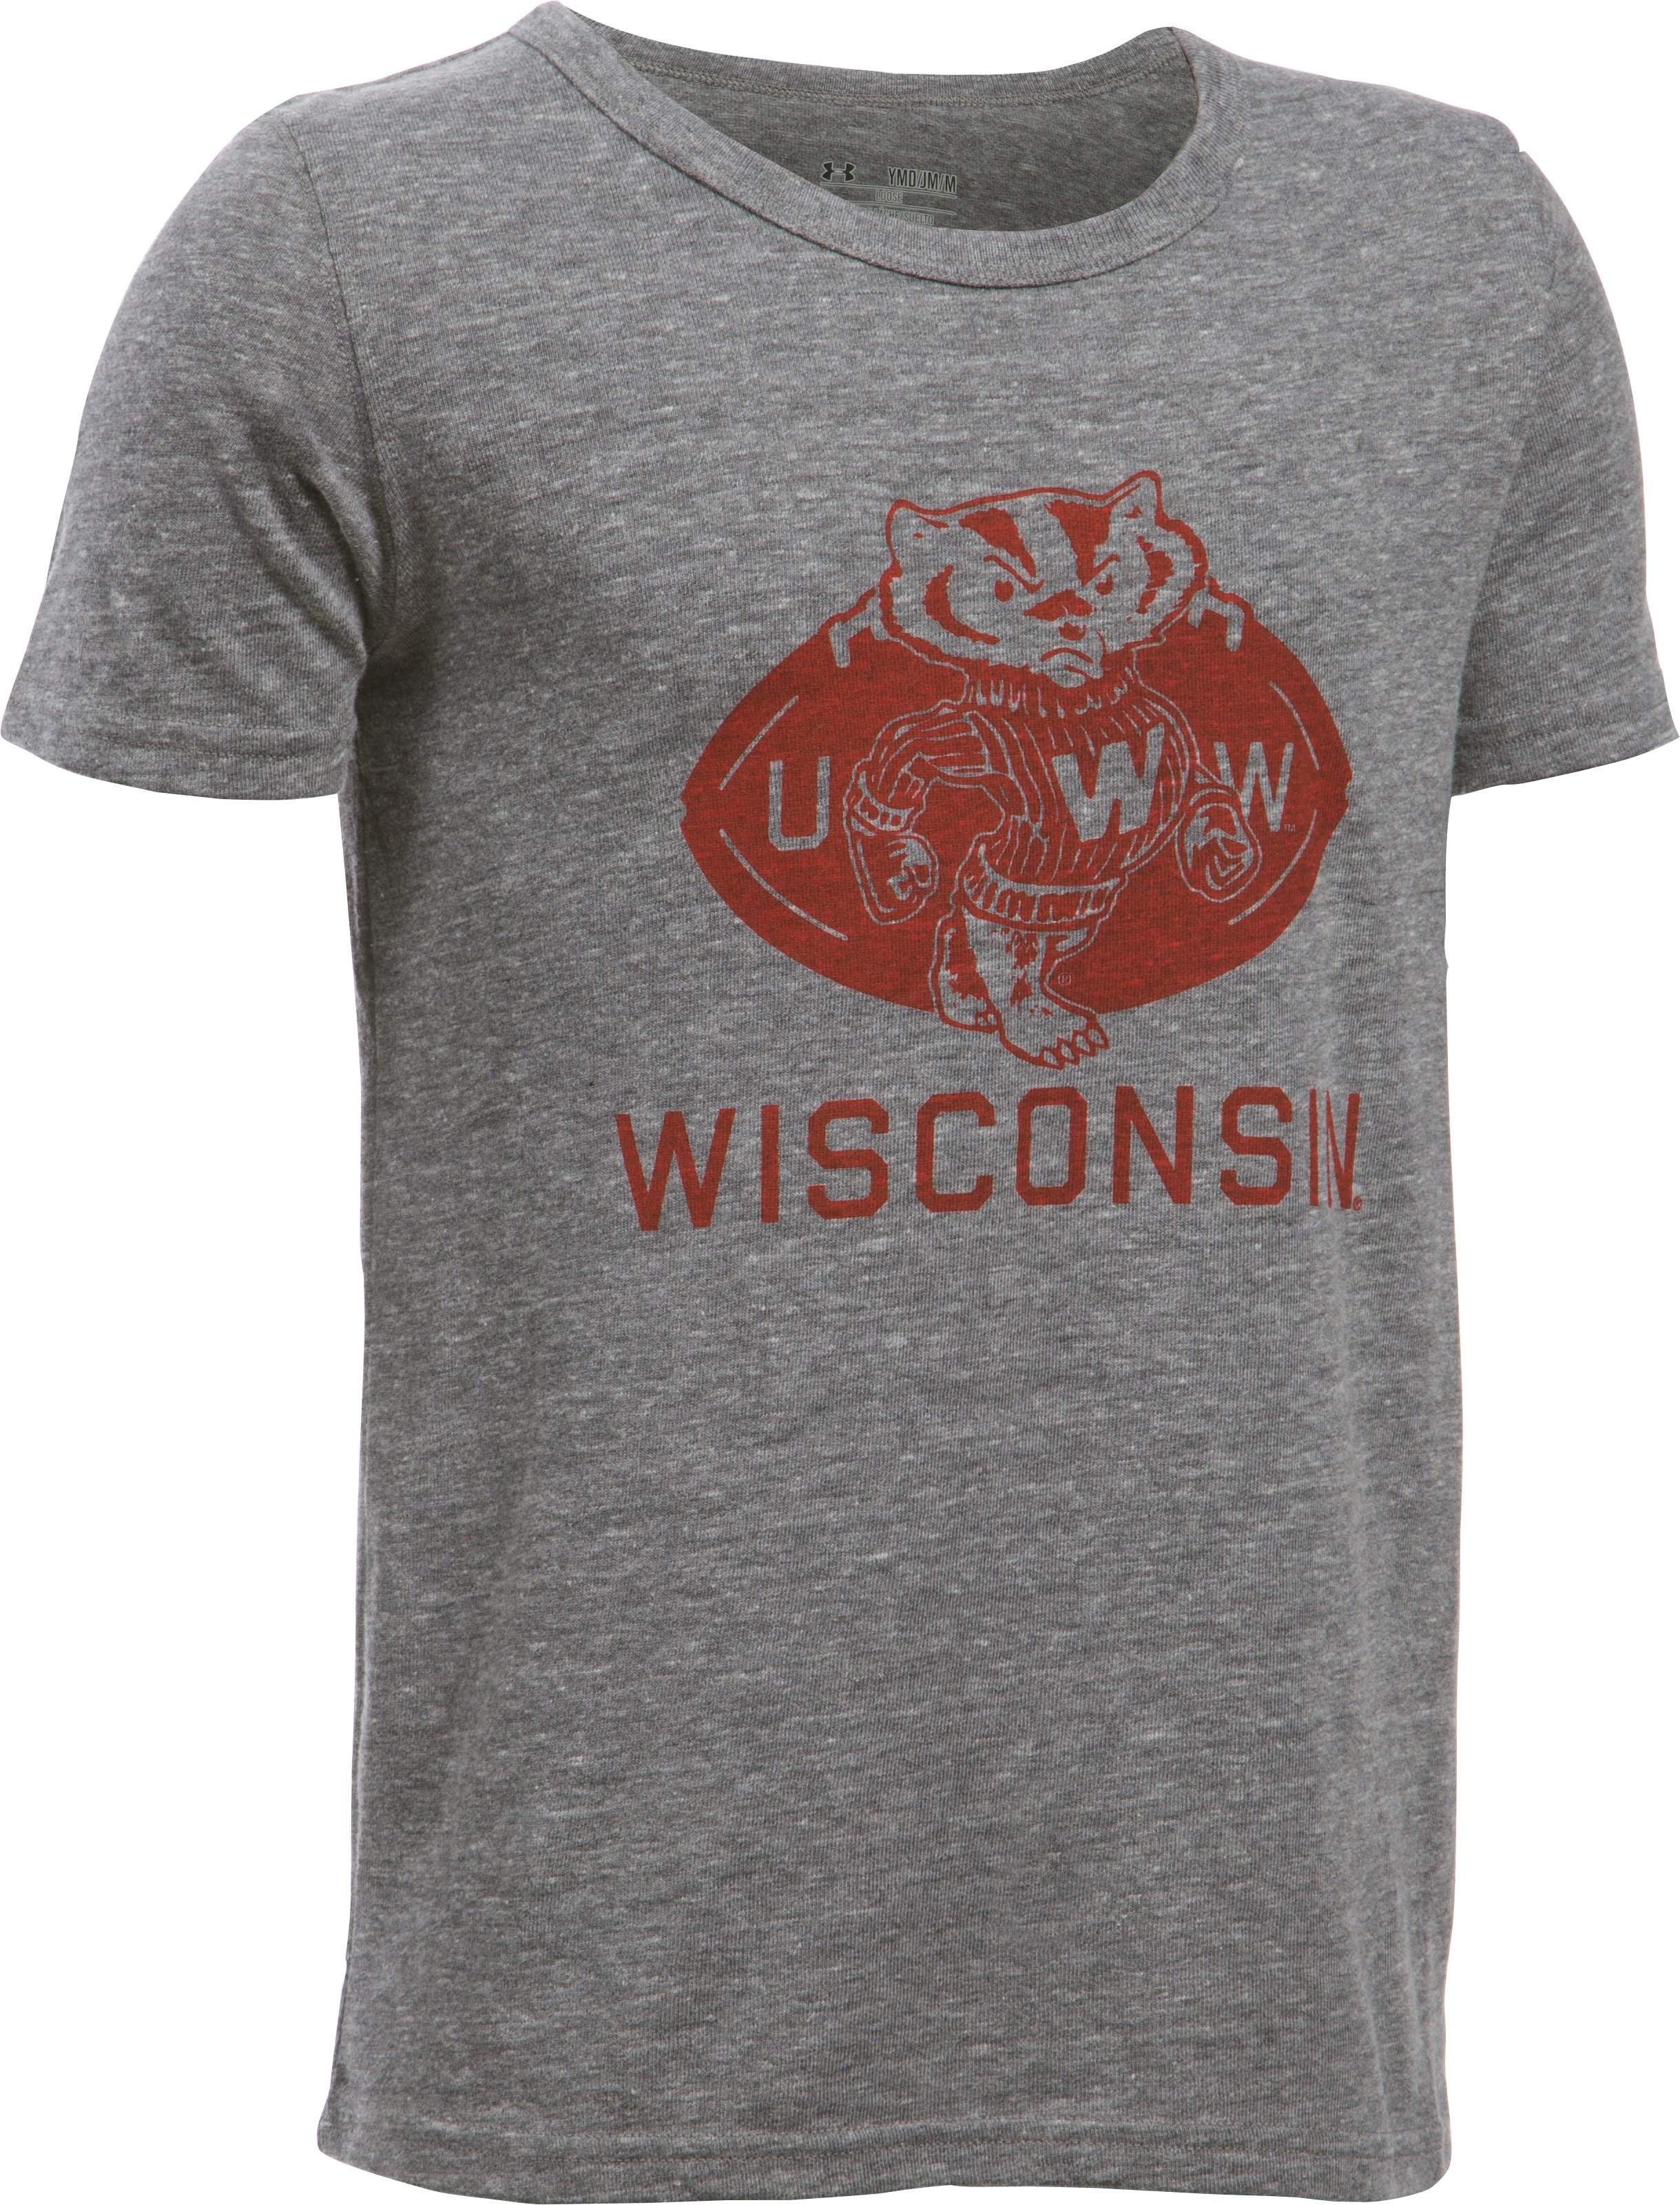 Boys' Wisconsin UA Iconic T-Shirt, True Gray Heather